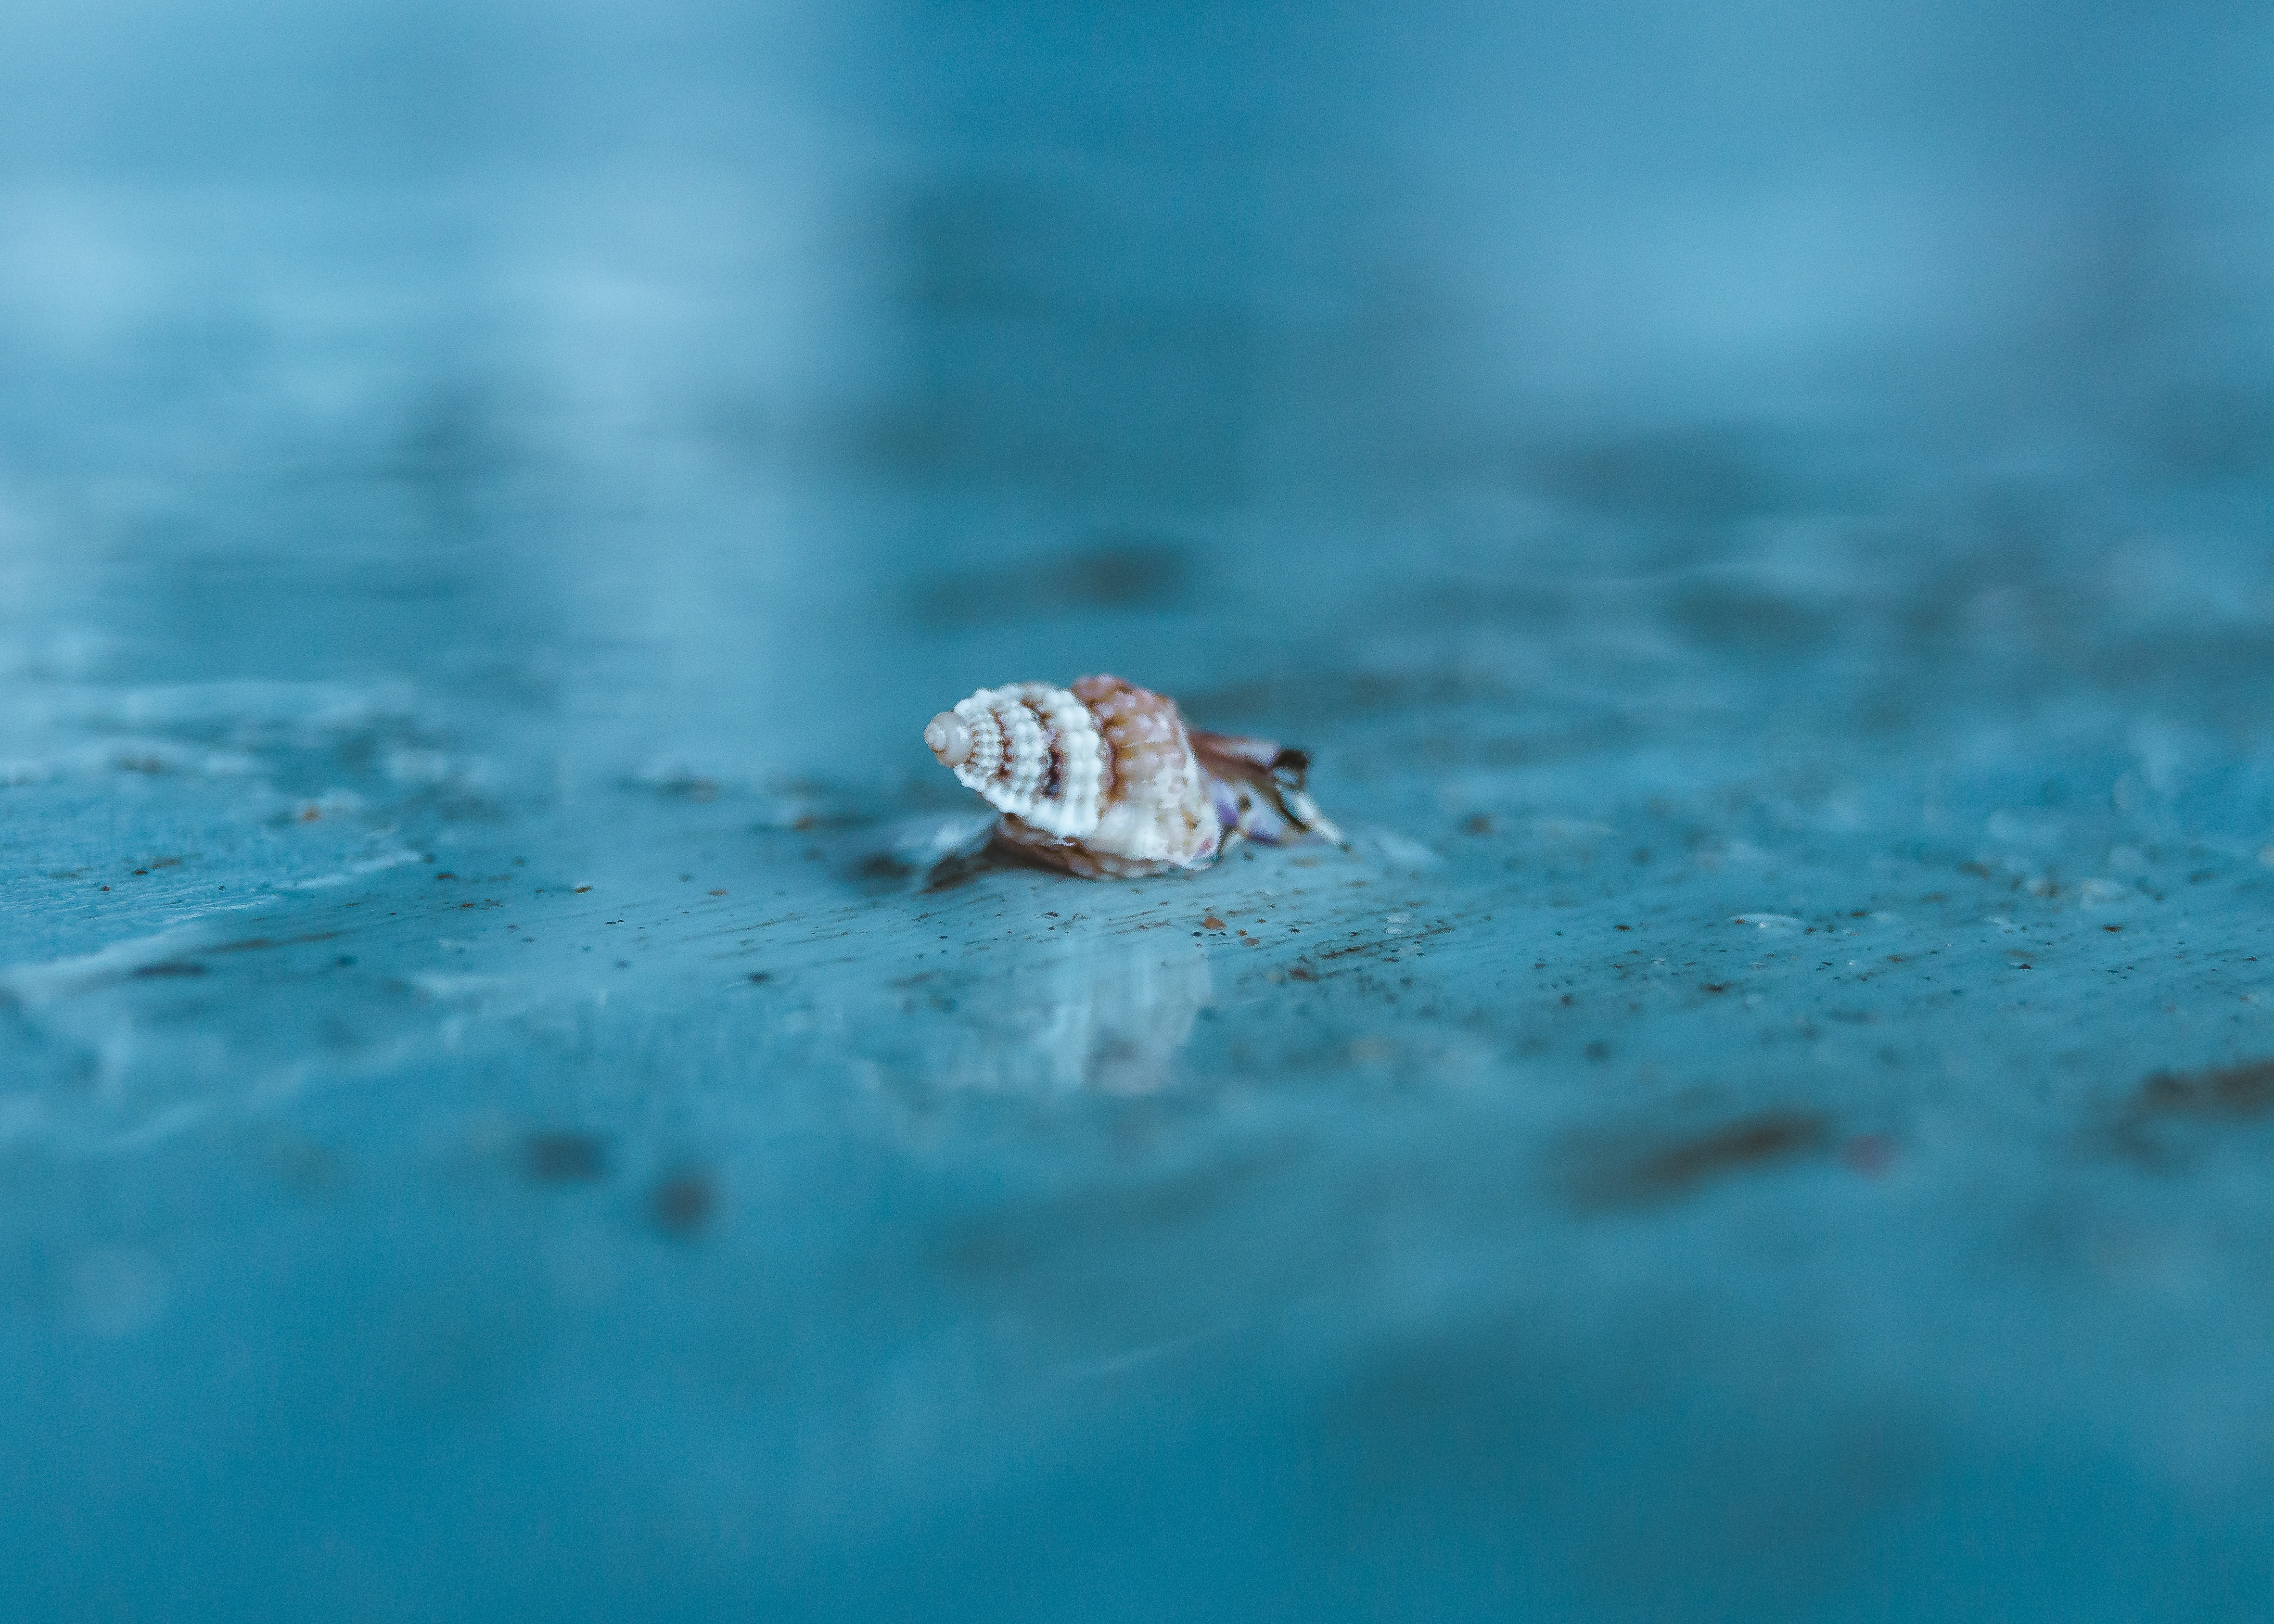 snail crawling on gray surface